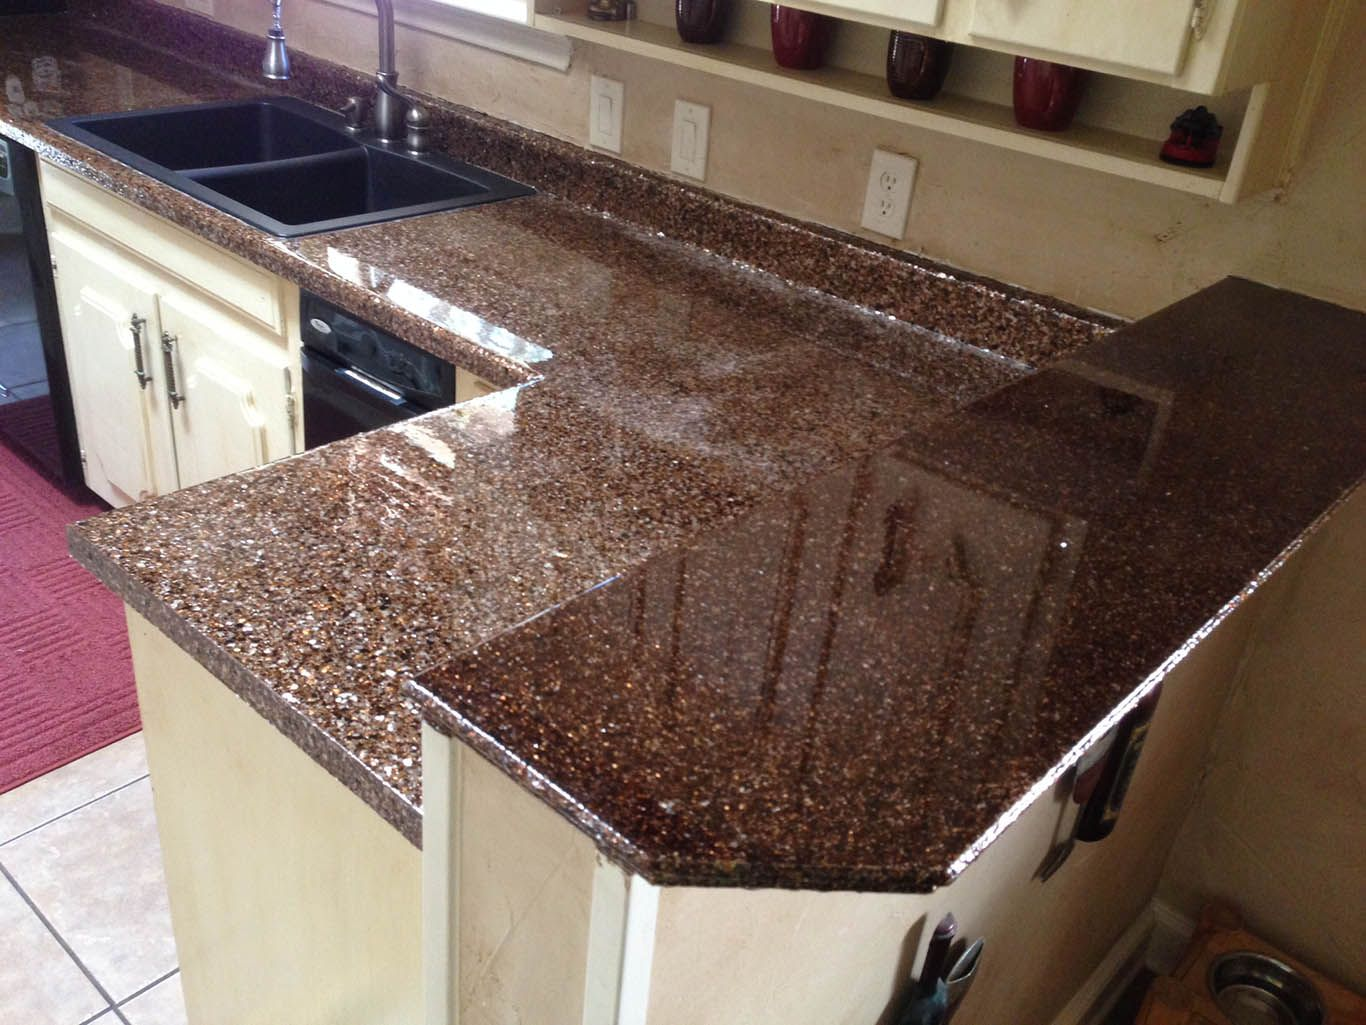 Epoxy Paint For Kitchen Countertops - Best Kitchen Design and ...